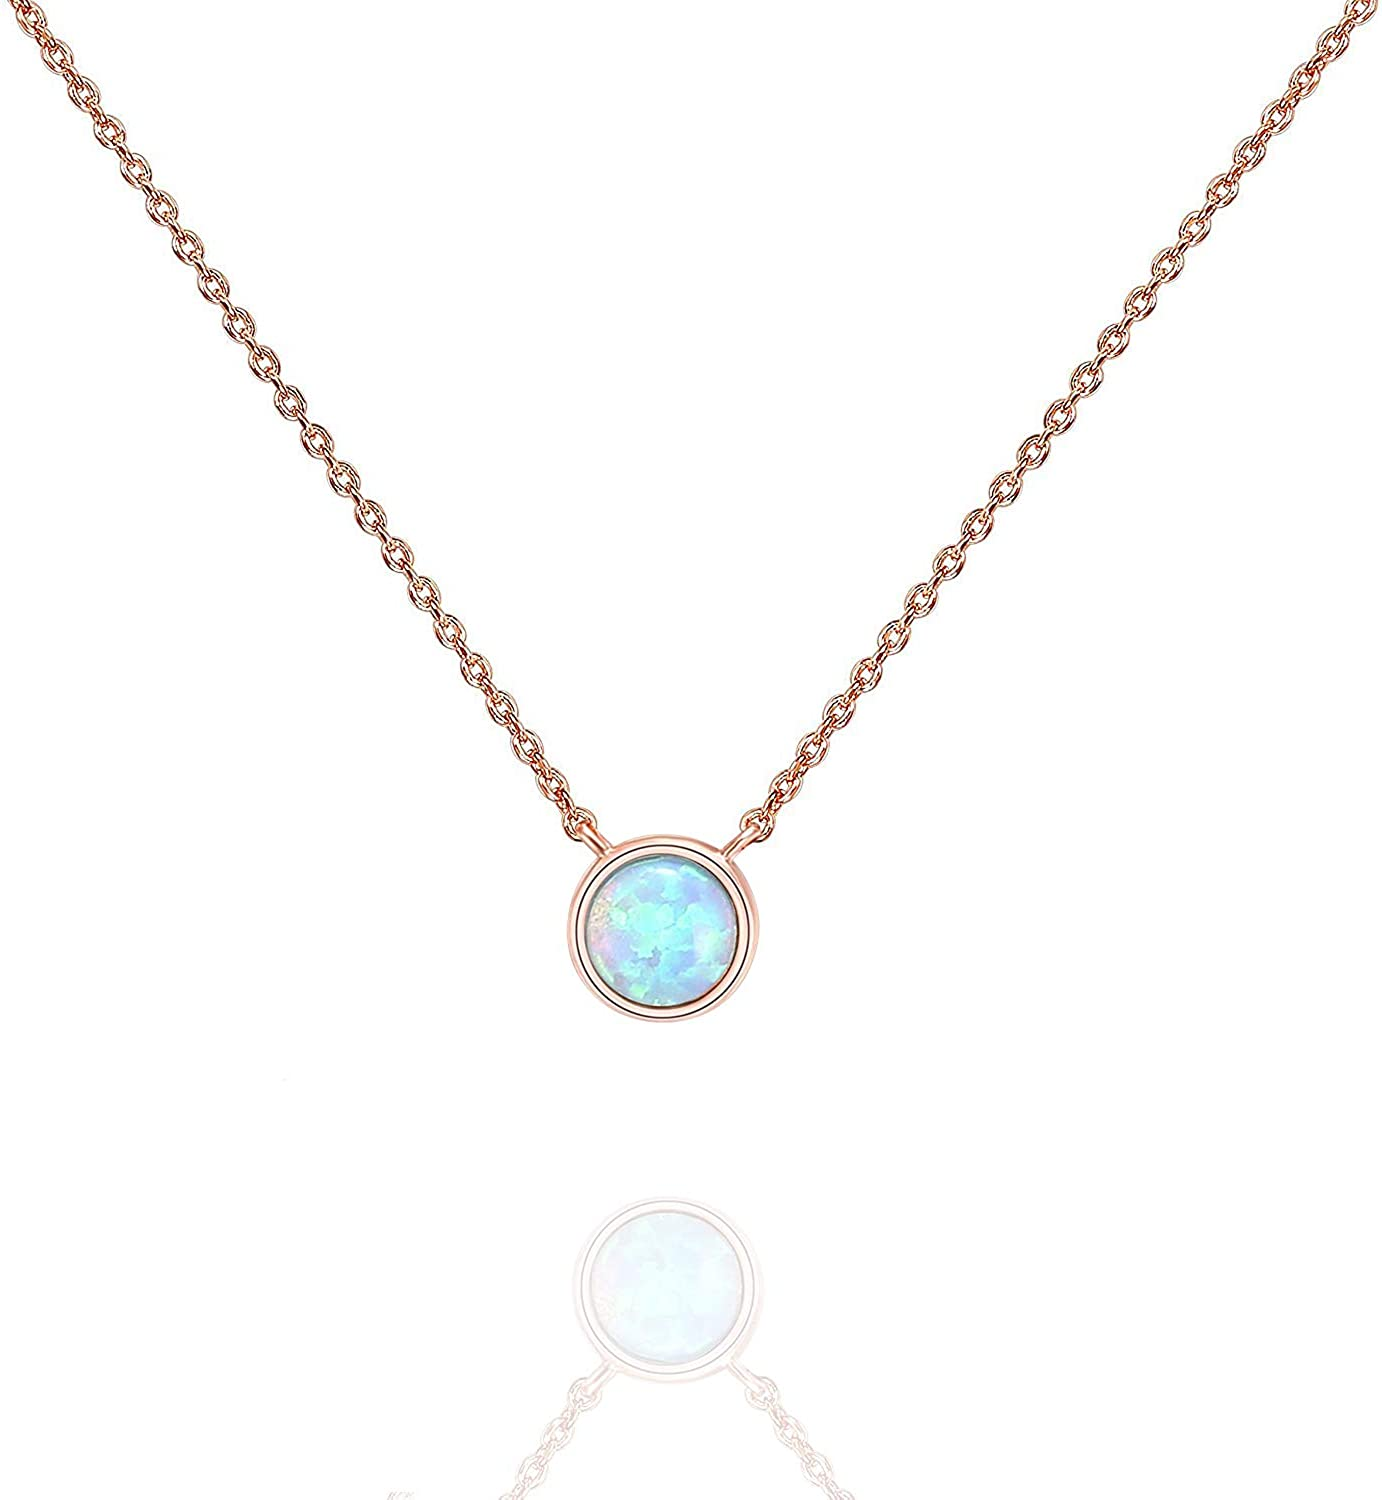 PAVOI 14K Gold Plated Created Opal Necklace   Opal Necklaces for Women